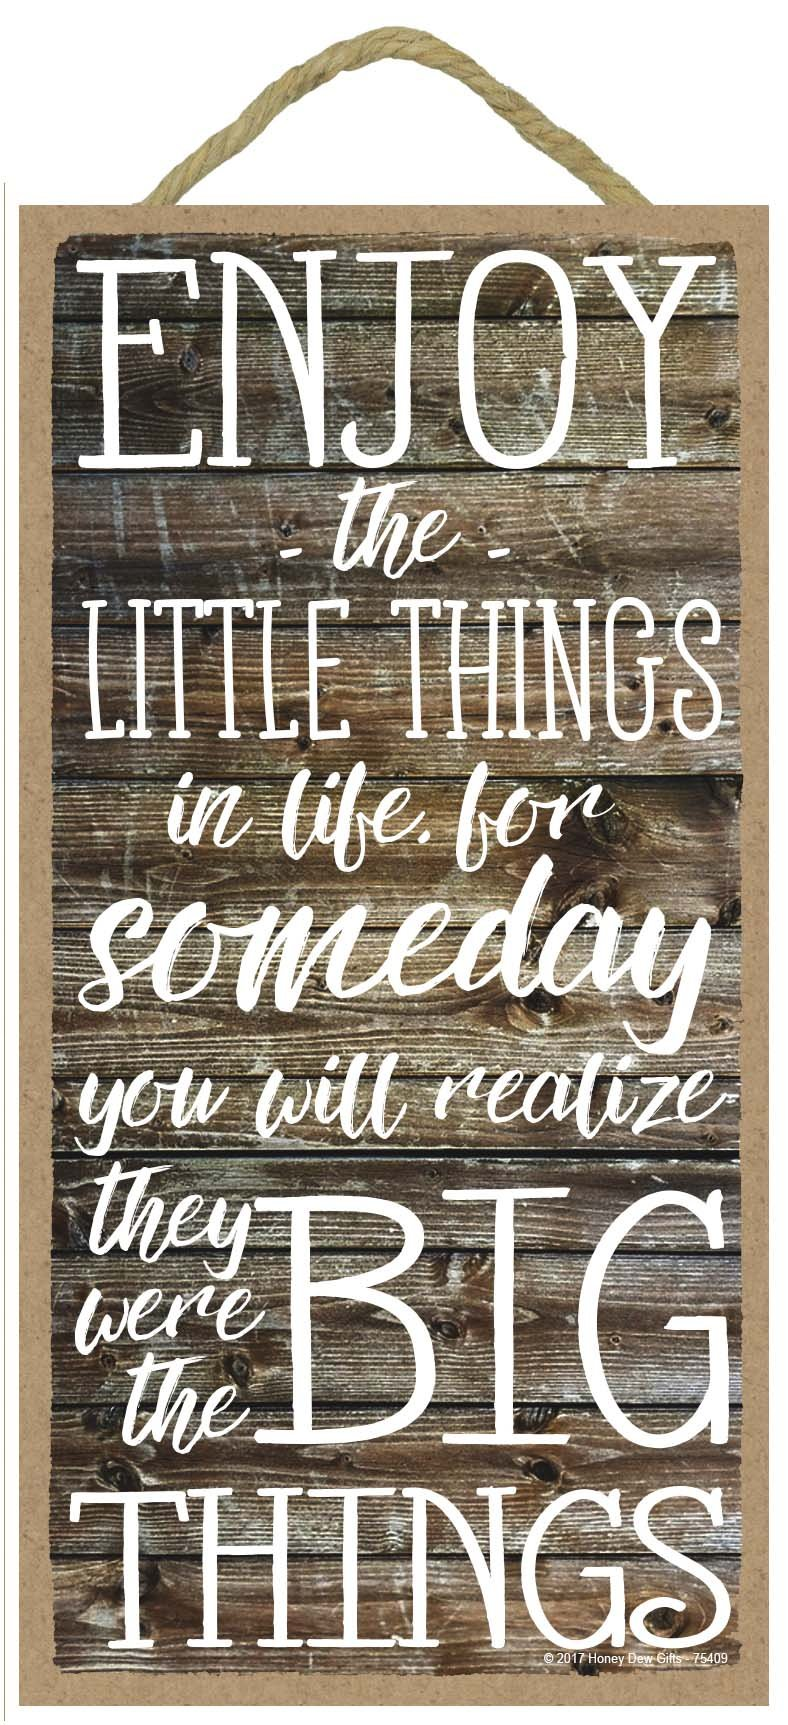 Honey Dew Gifts Wall Hanging Decorative Wood Sign - Enjoy The Little Things in Life for Someday You Will Realize They were The Big Things 5x10 Hang on The Wall Home Decor by Honey Dew Gifts